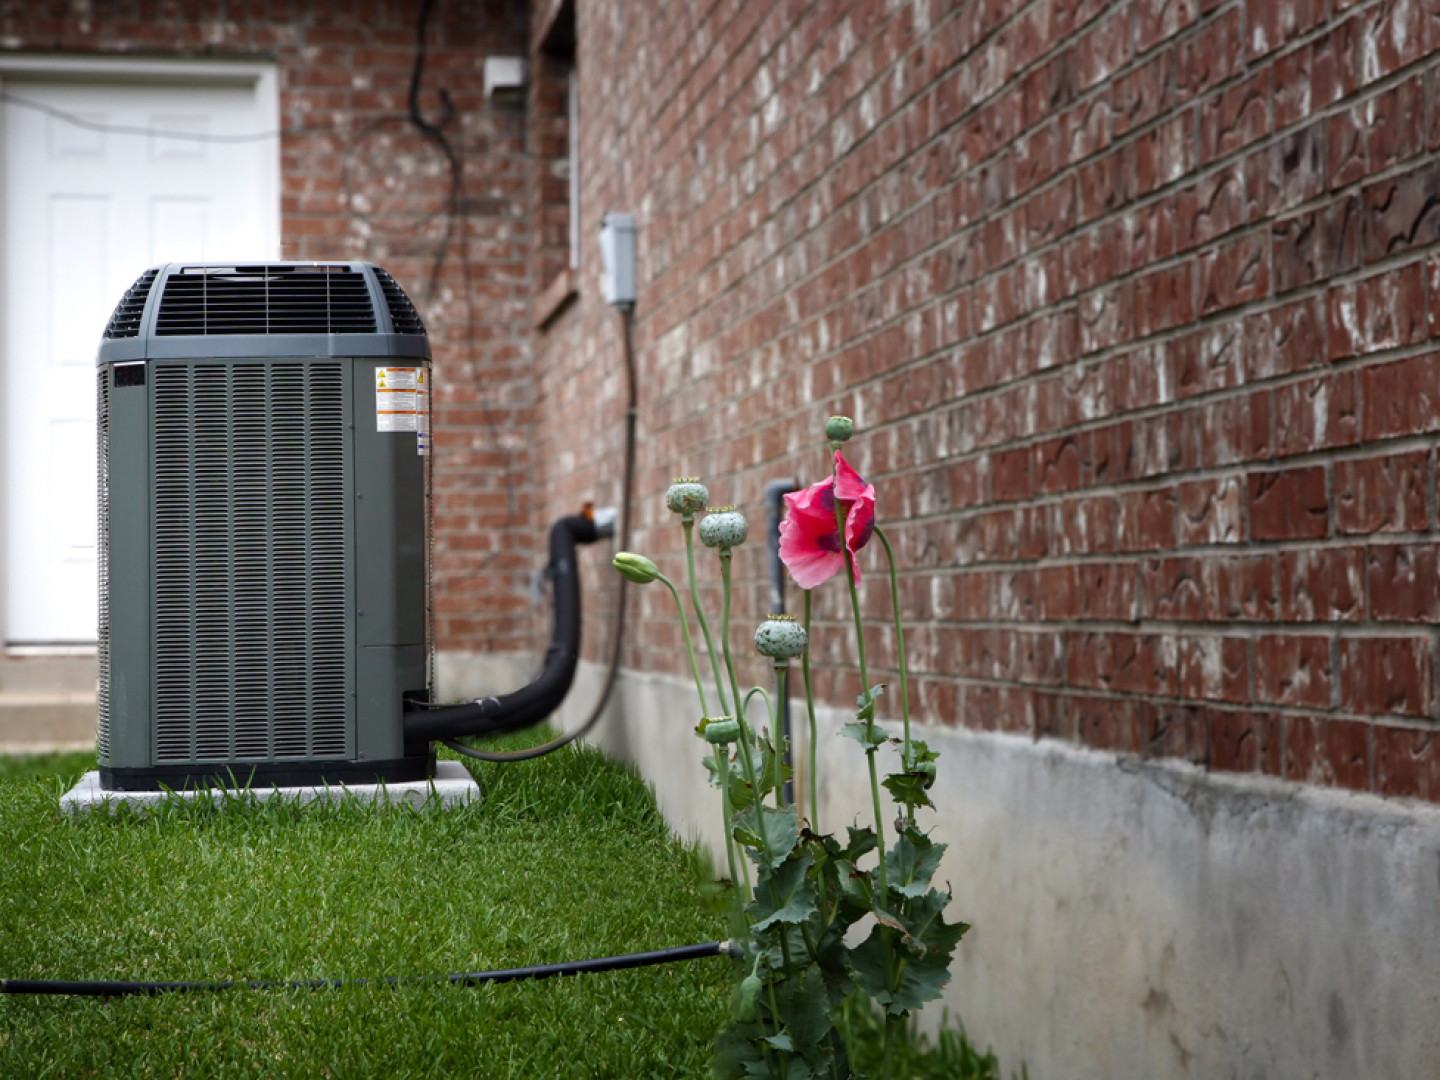 Get reliable heat pump repair service close to home